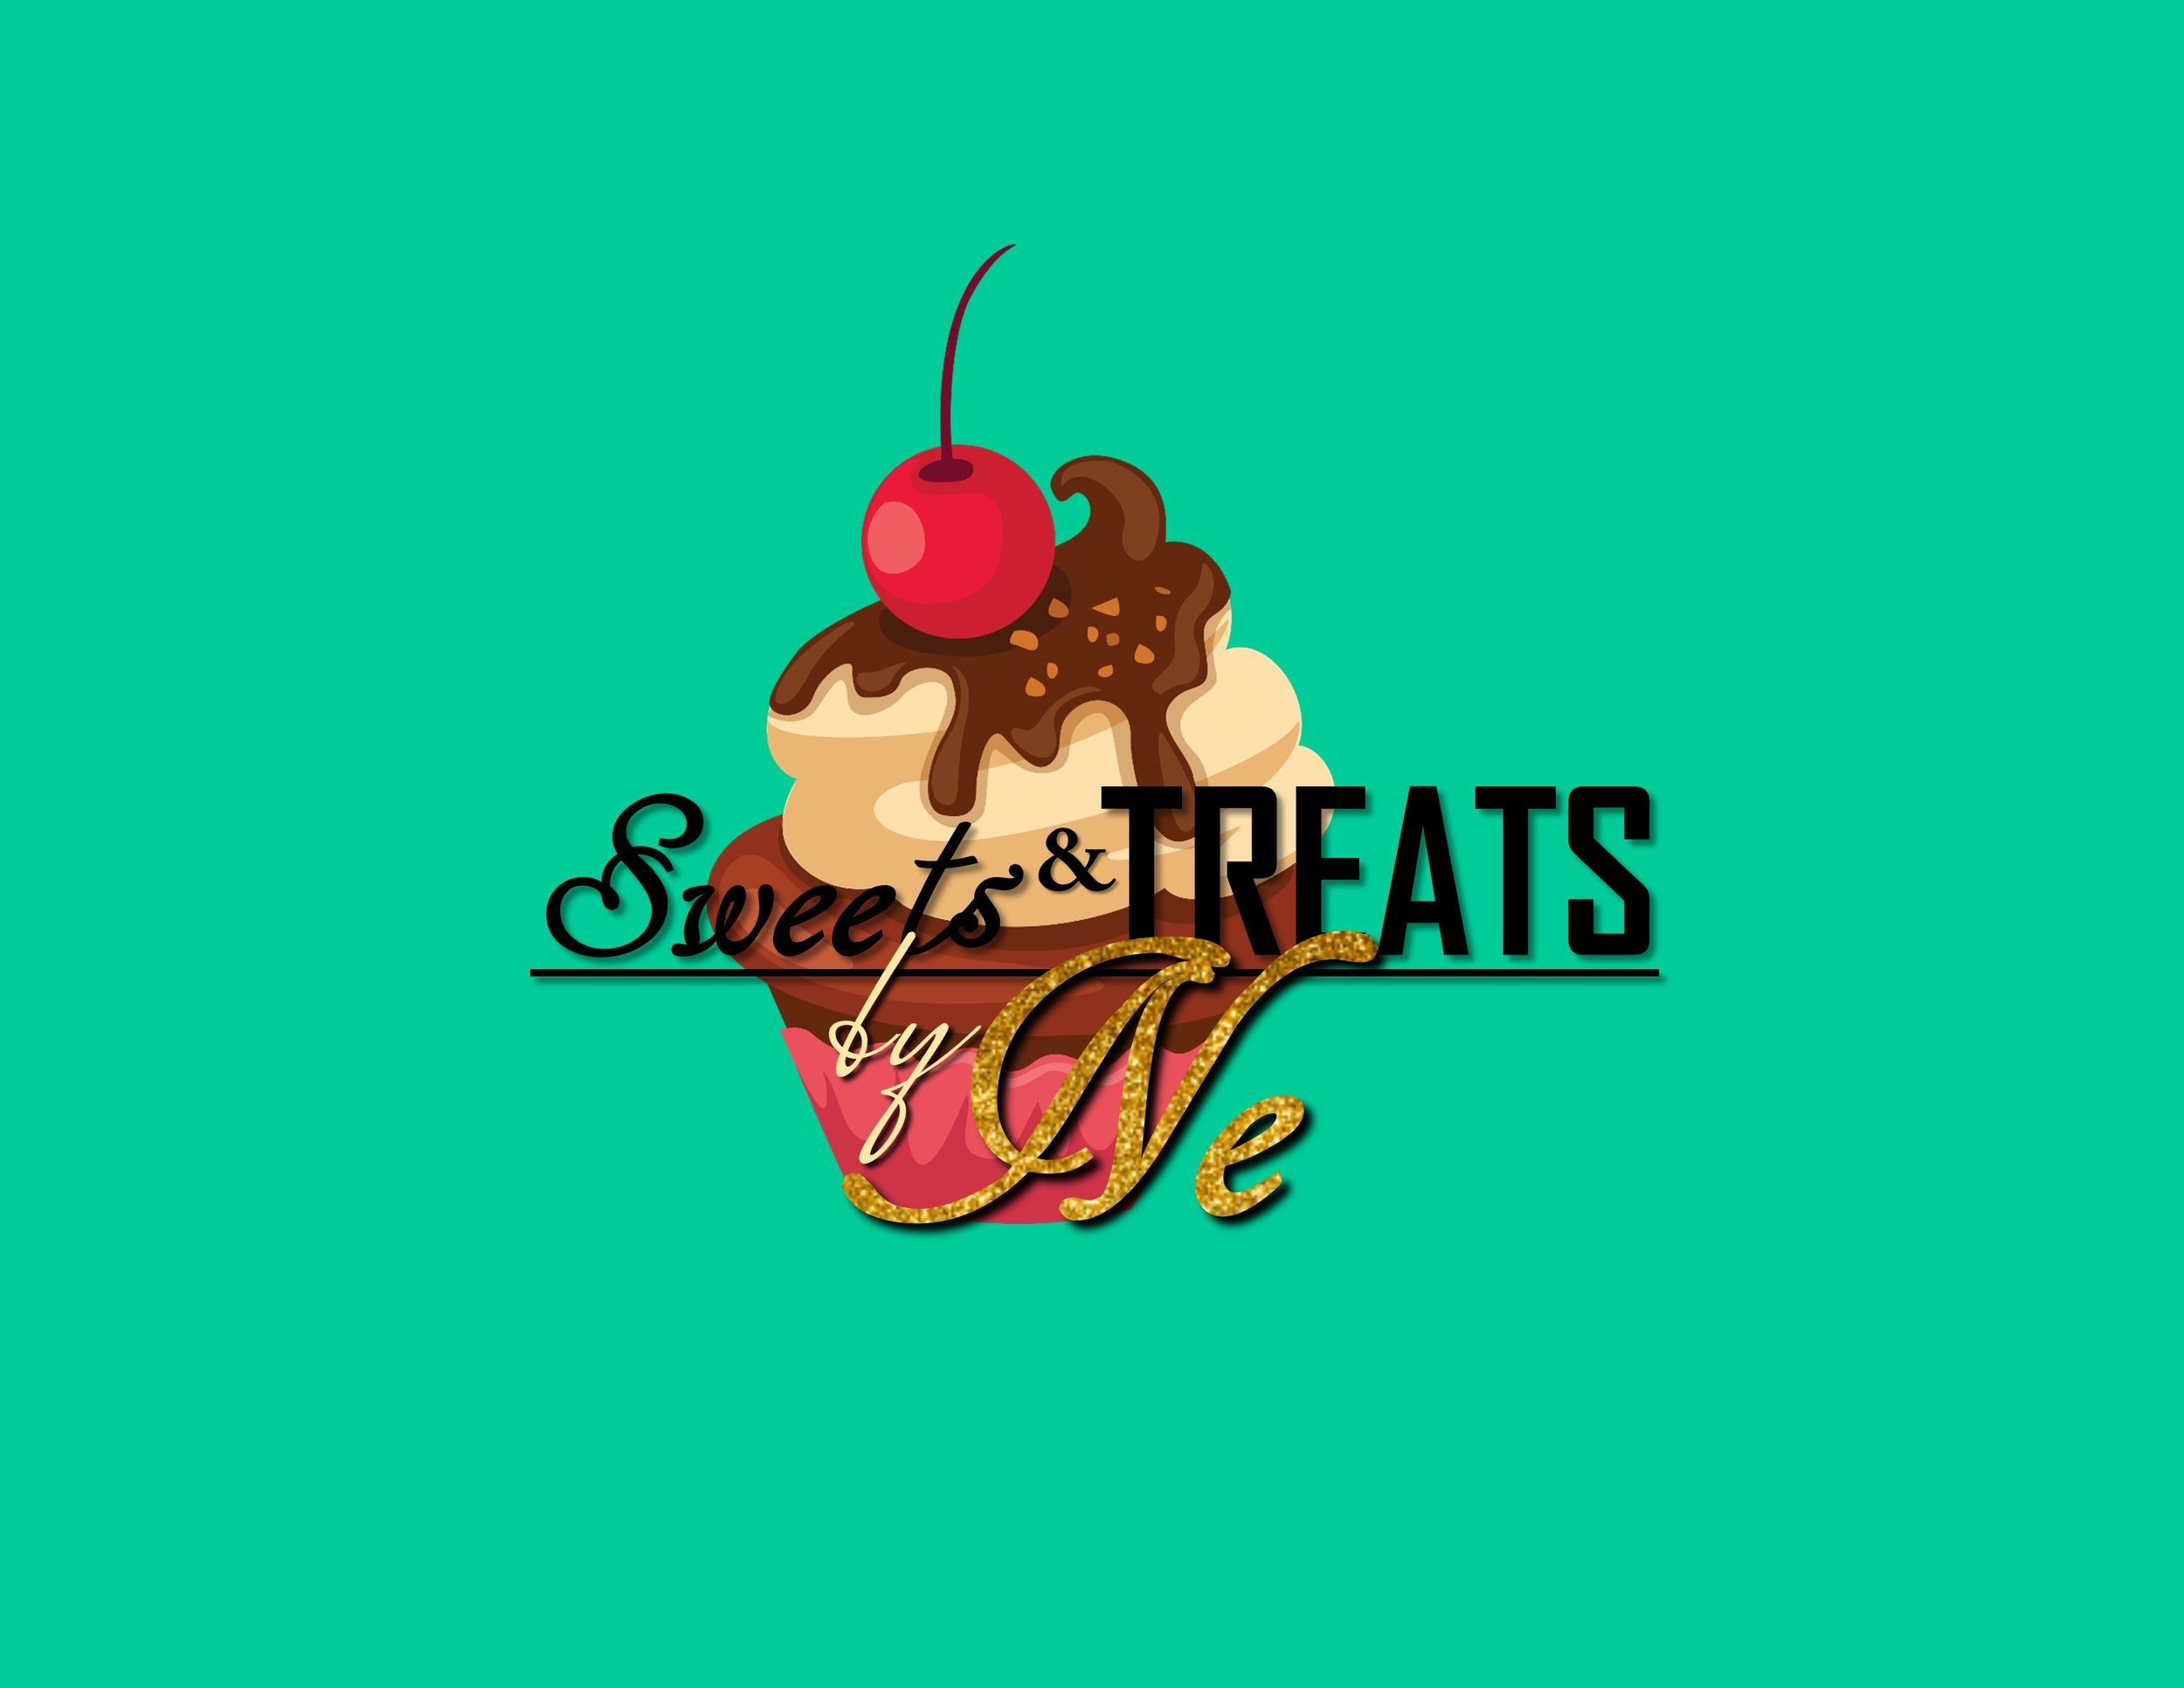 Sweets & Treats Final Logo.jpg